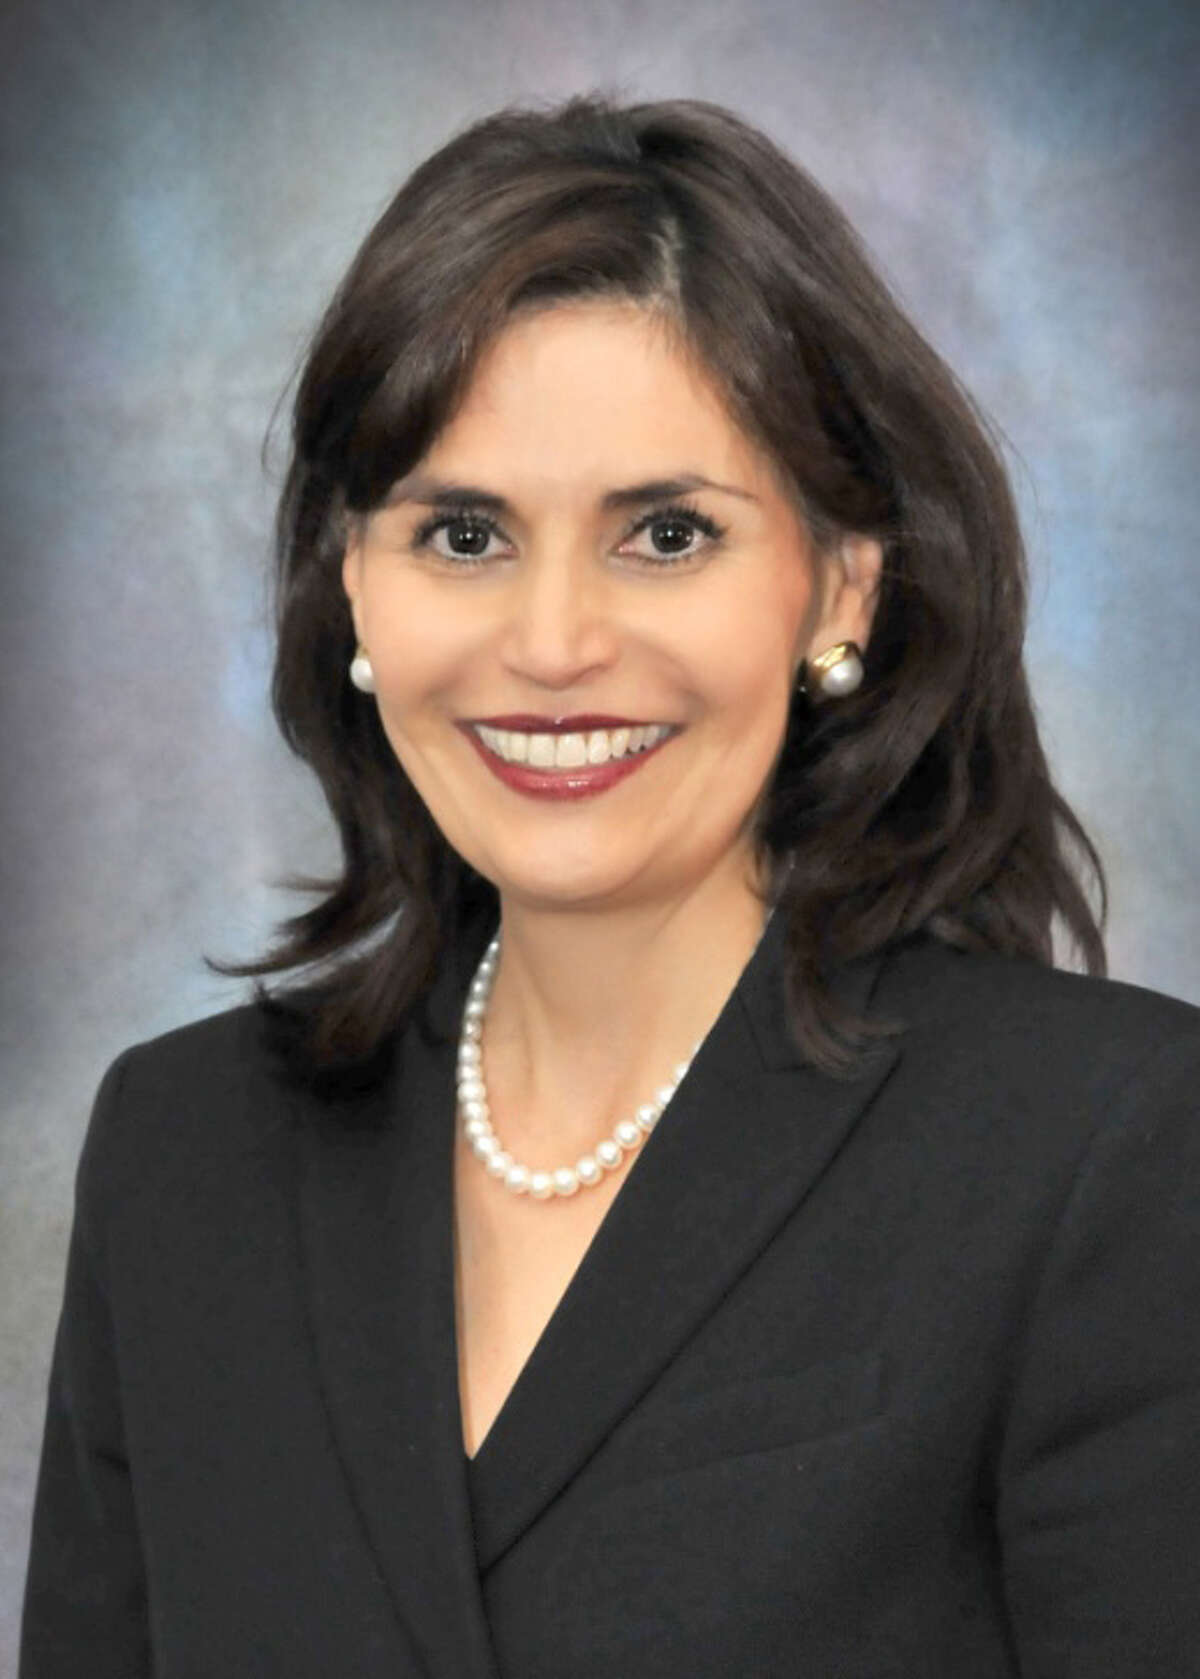 Denise Castillo-Rhodes is the executive vice president and chief financial officer of Texas Medical Center. She was named on of the 50 most influential women in Houston in 2015 and was invited to join the International Women's Forum in 2016.